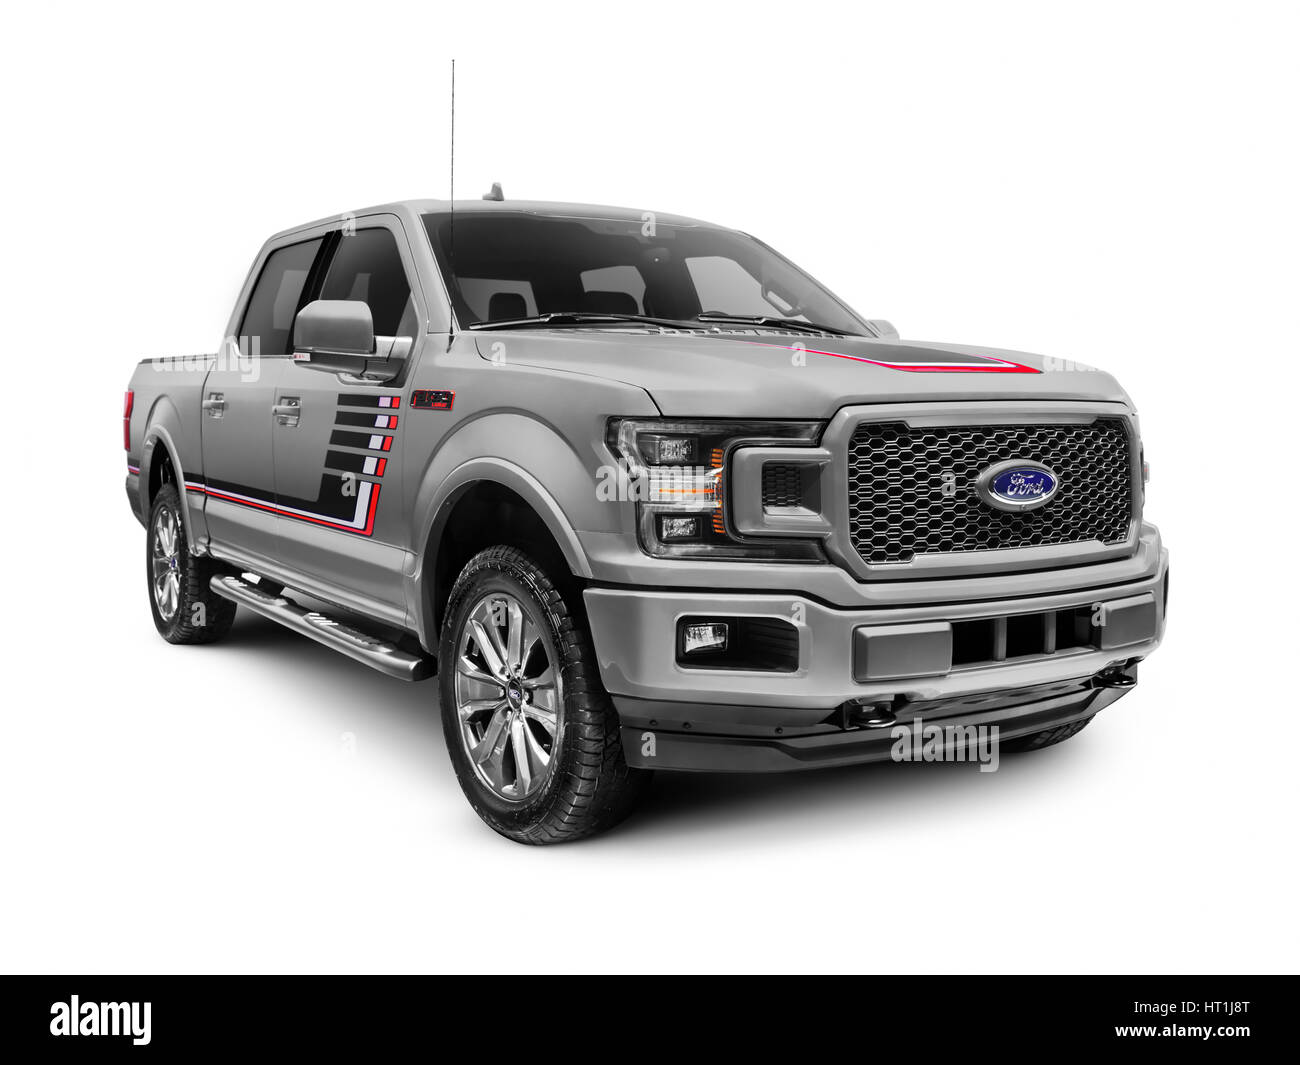 Gray 2018 Ford F-150 Lariat pickup truck isolated on white background - Stock Image